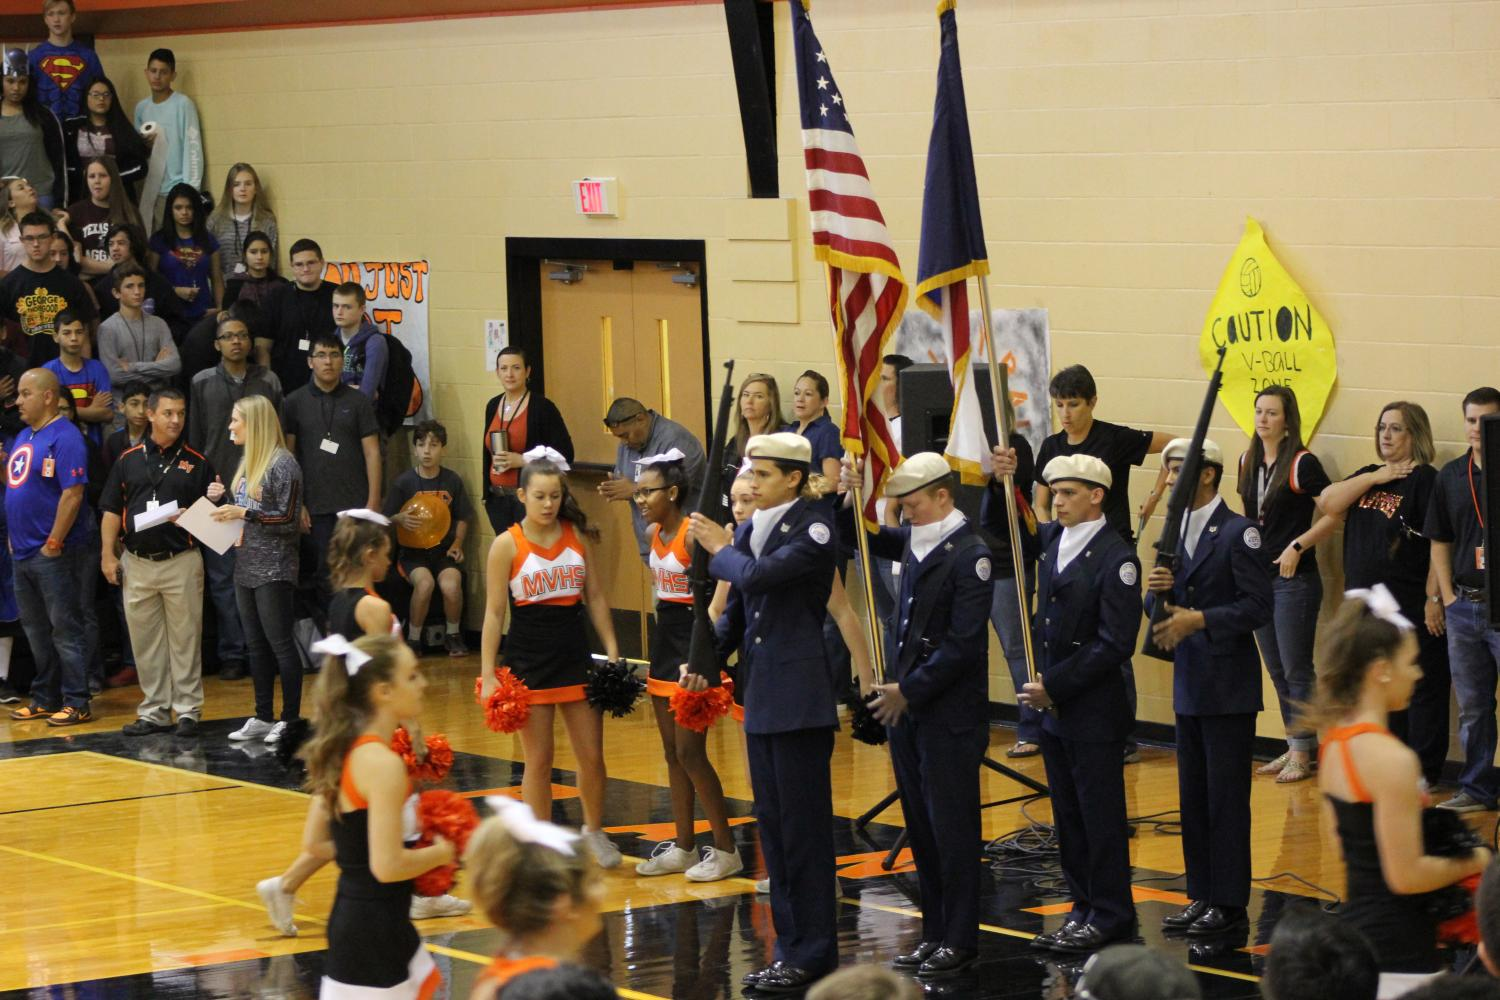 (Drill team performing at a pep rally. Jace Mills, Thomas Cook, Blake Corlis, Devin Reyna. PC: Yearbook)